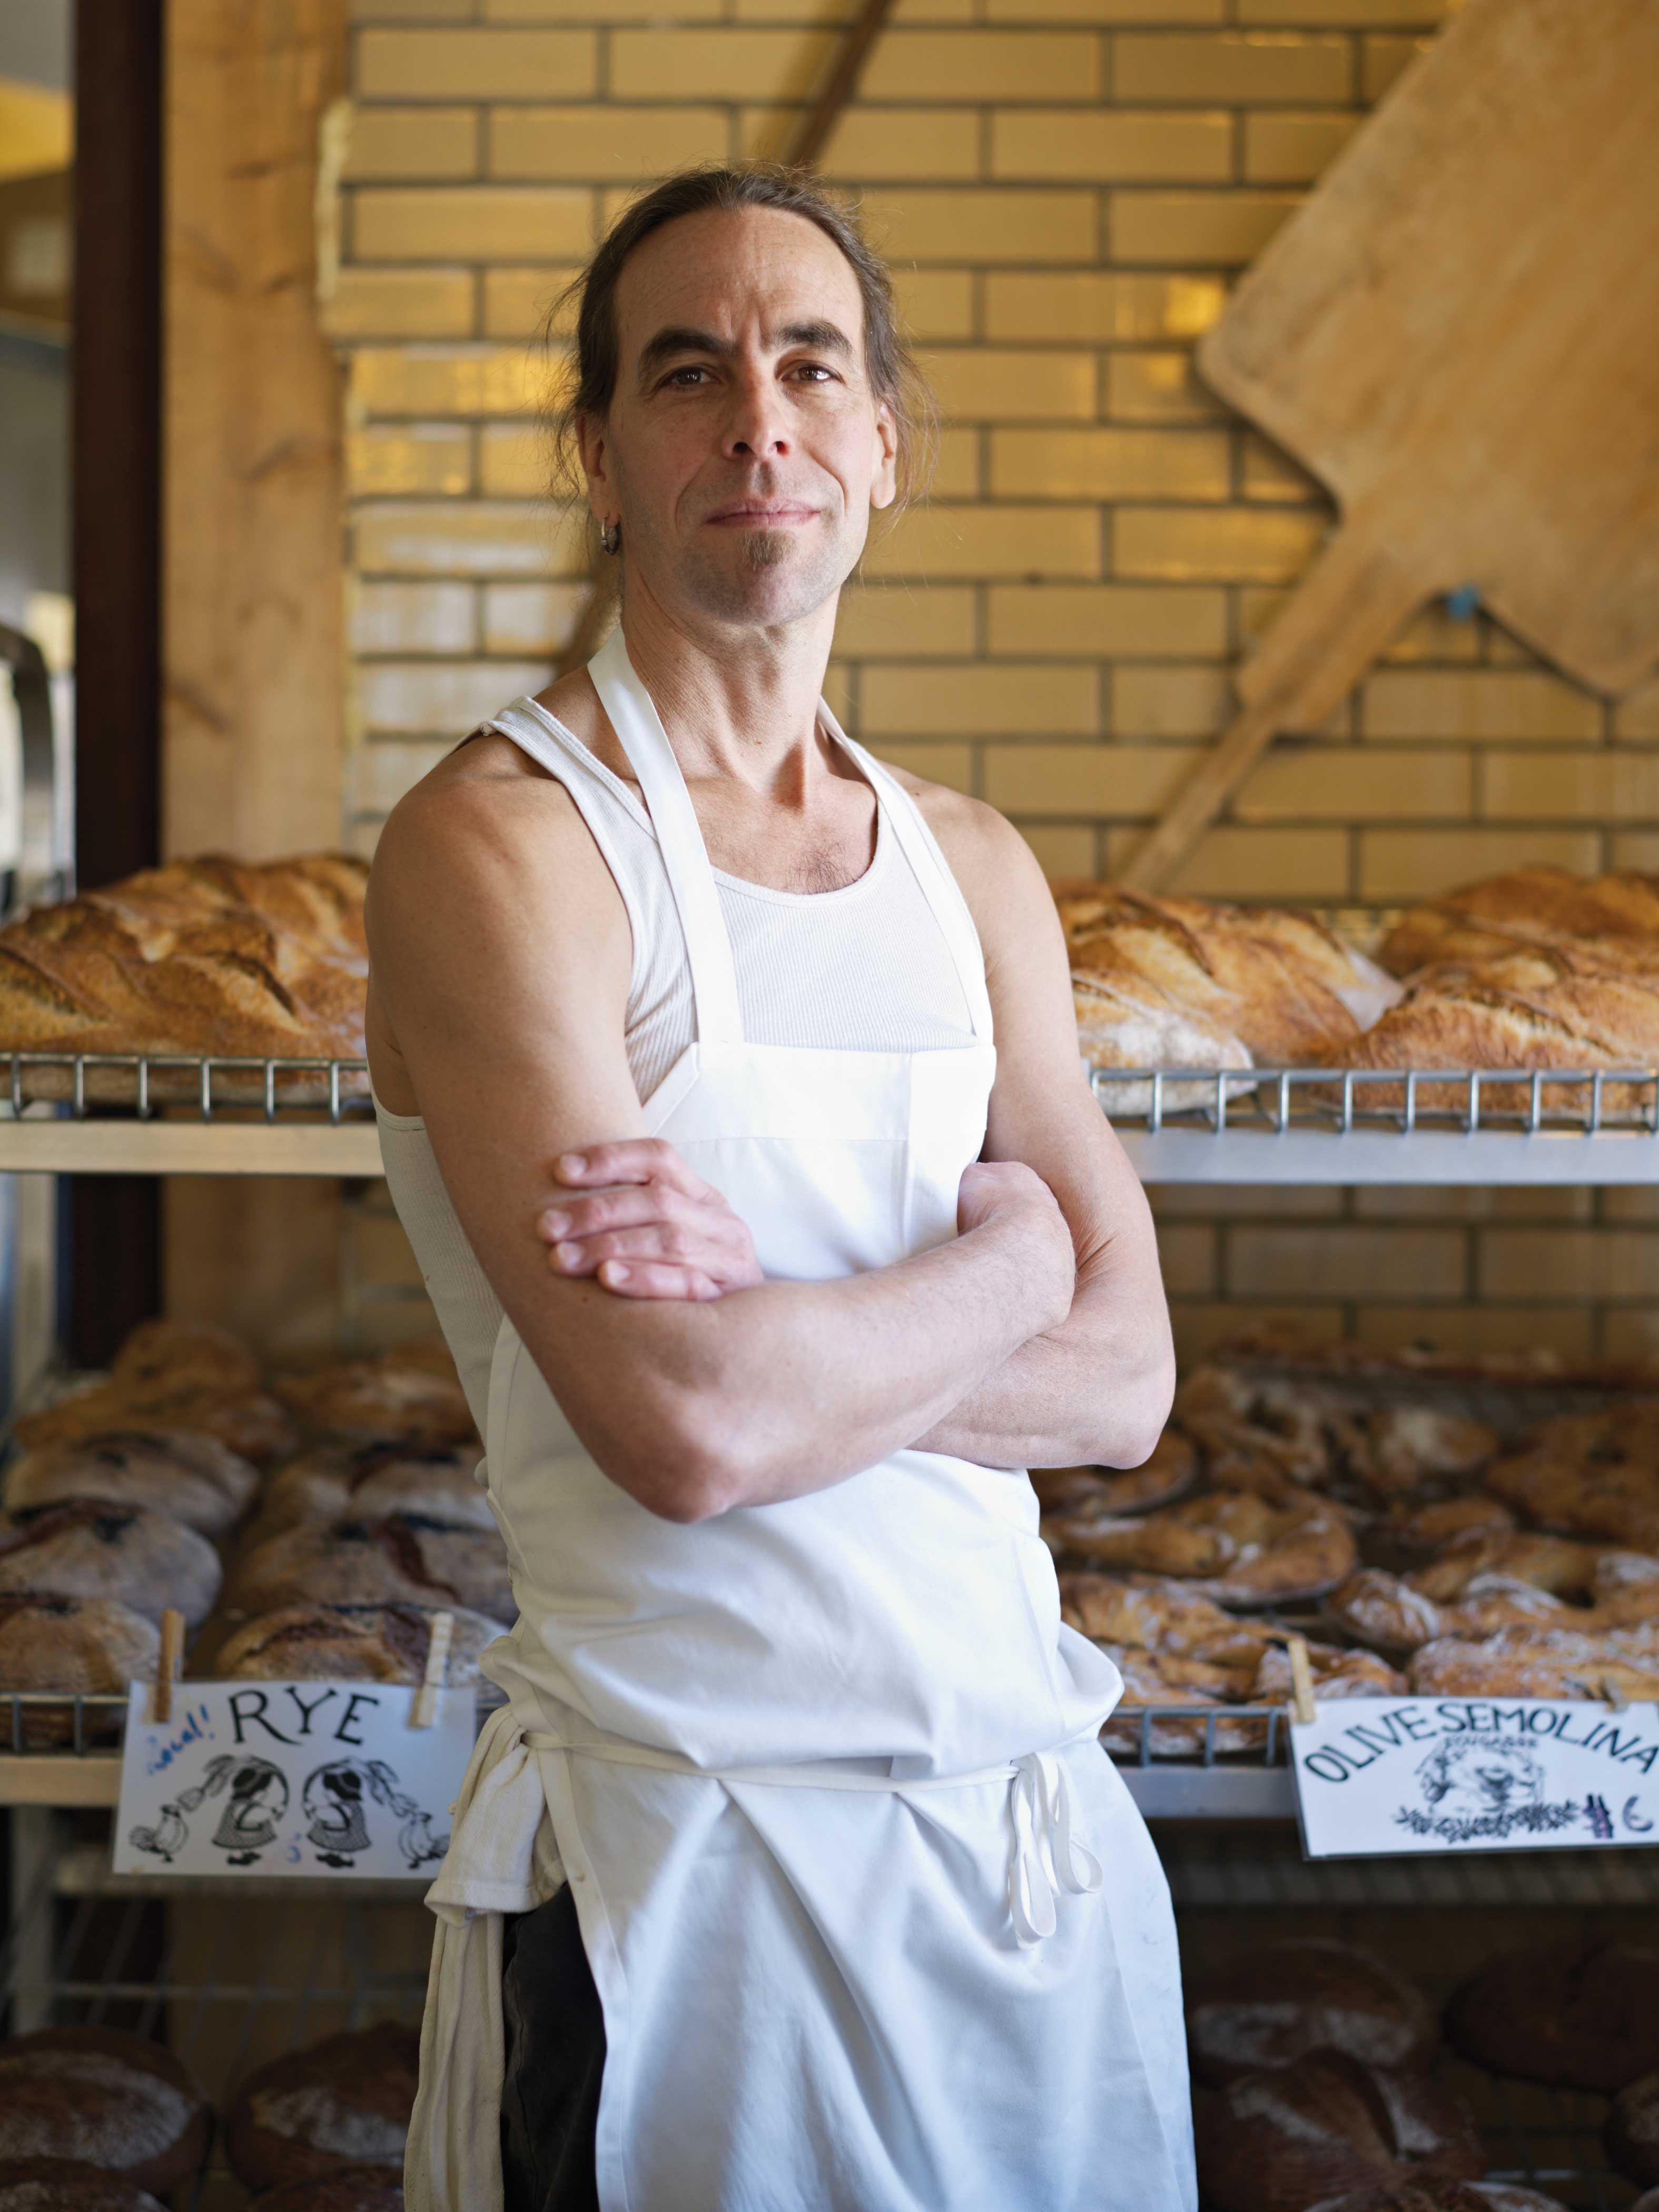 Jonathan Stevens bakes 2,000 loaves of bread a week, most of which contain flour from nearby Four Star Farms  -  and some of which are 100 percent local.